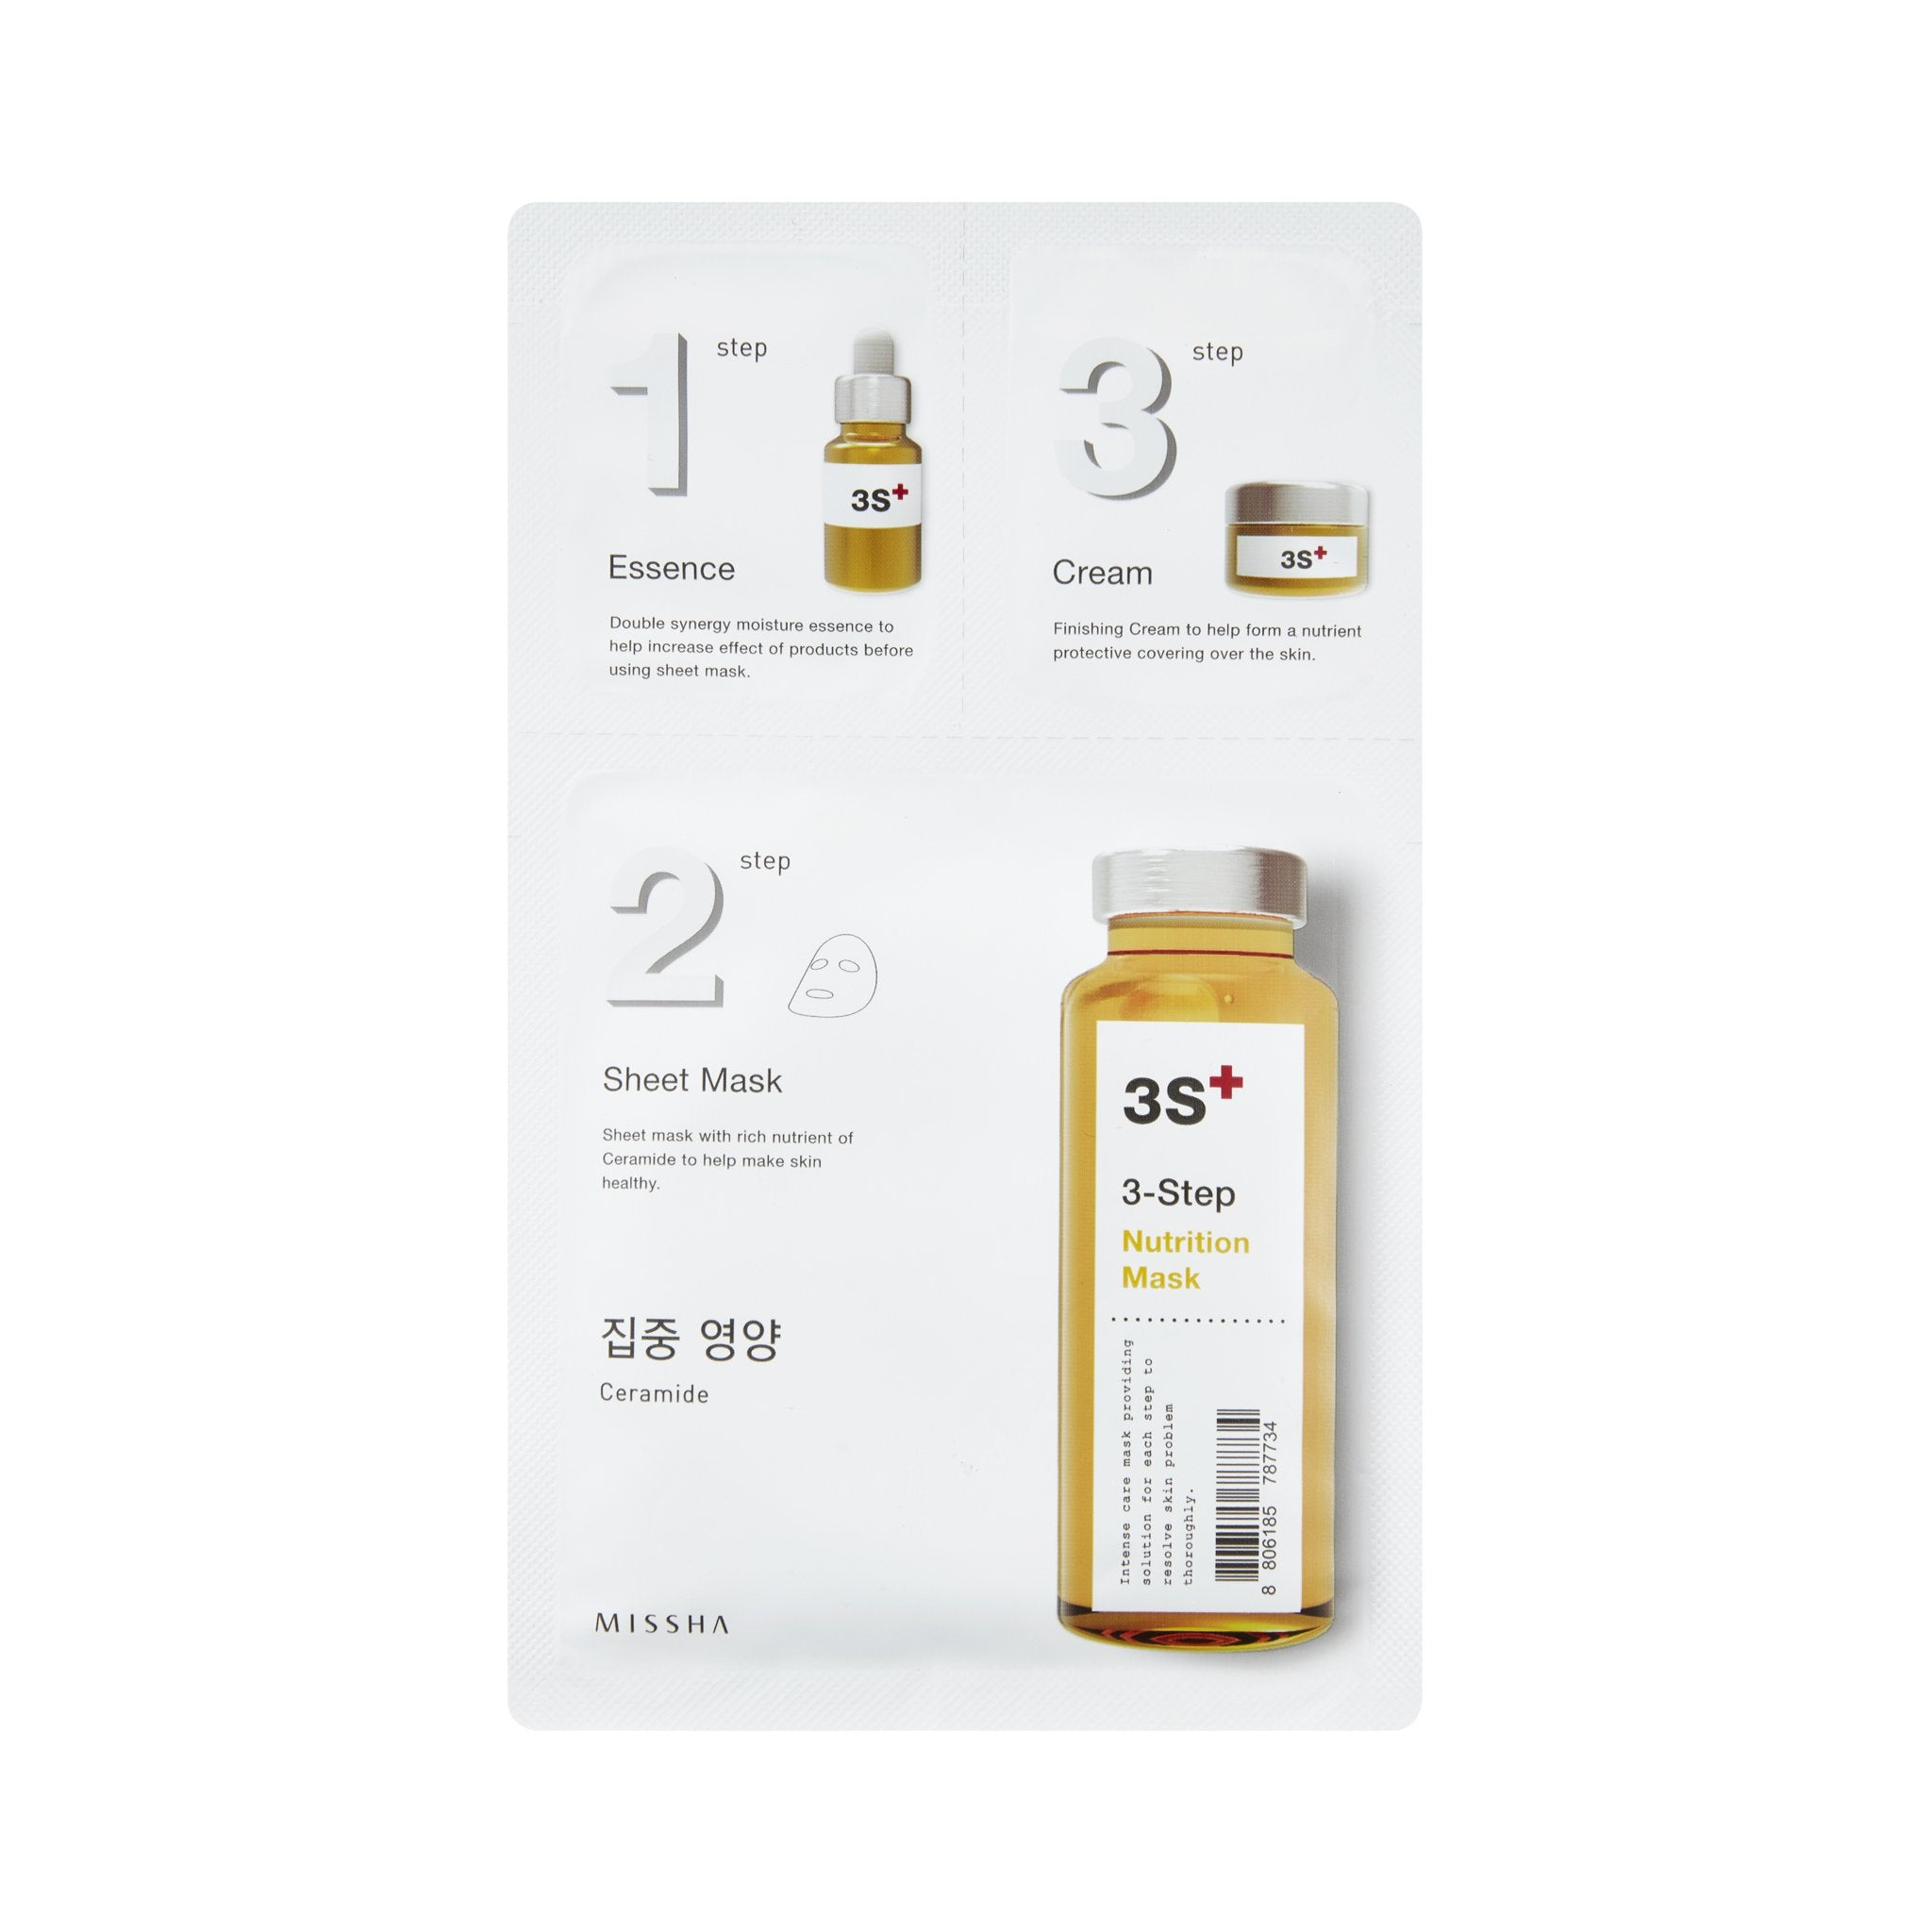 3 STEP MASK - MISSHA